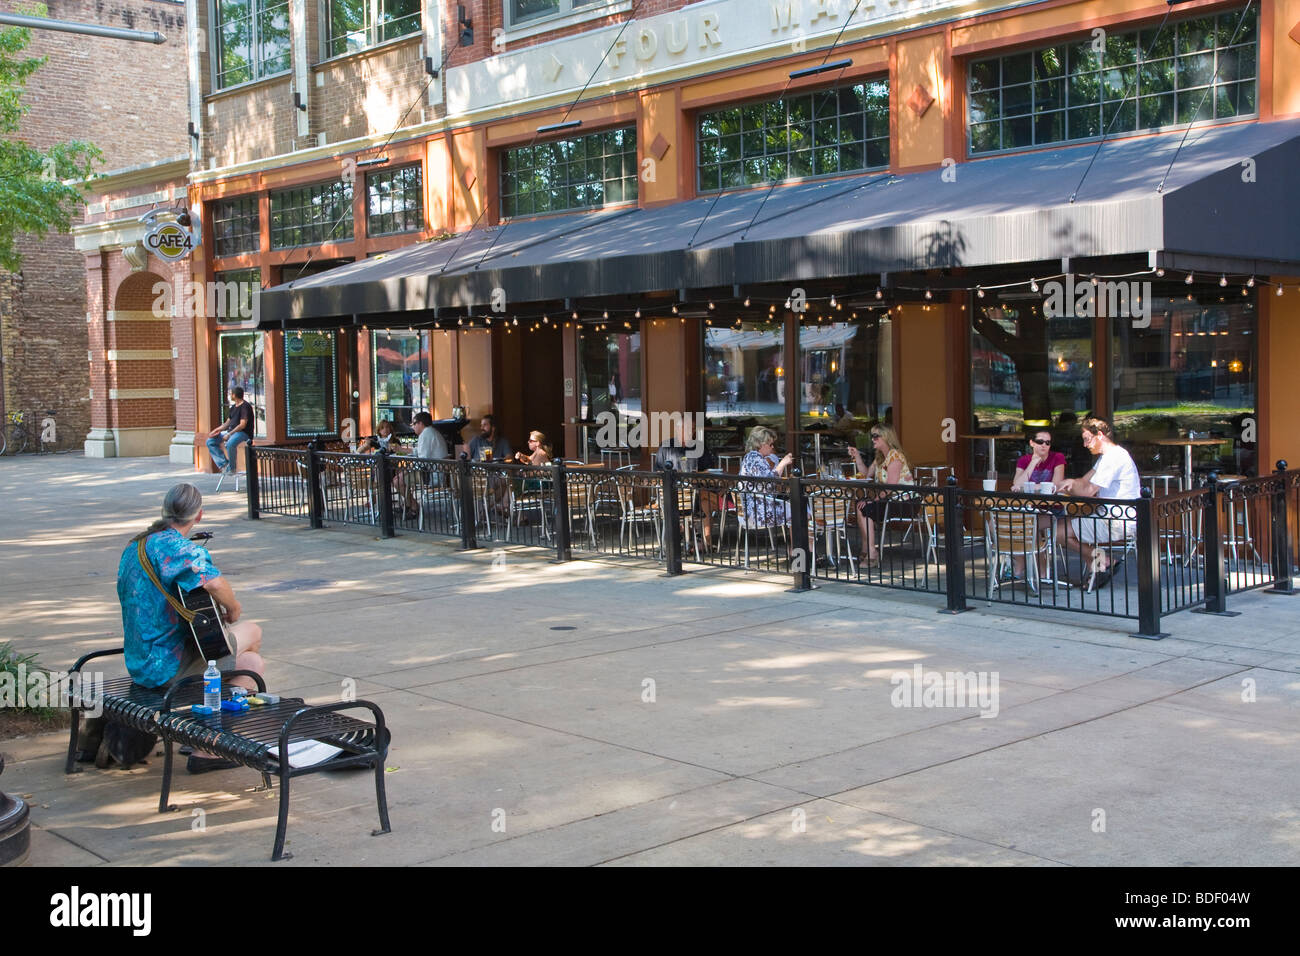 New Market Square Restaurant Knoxville